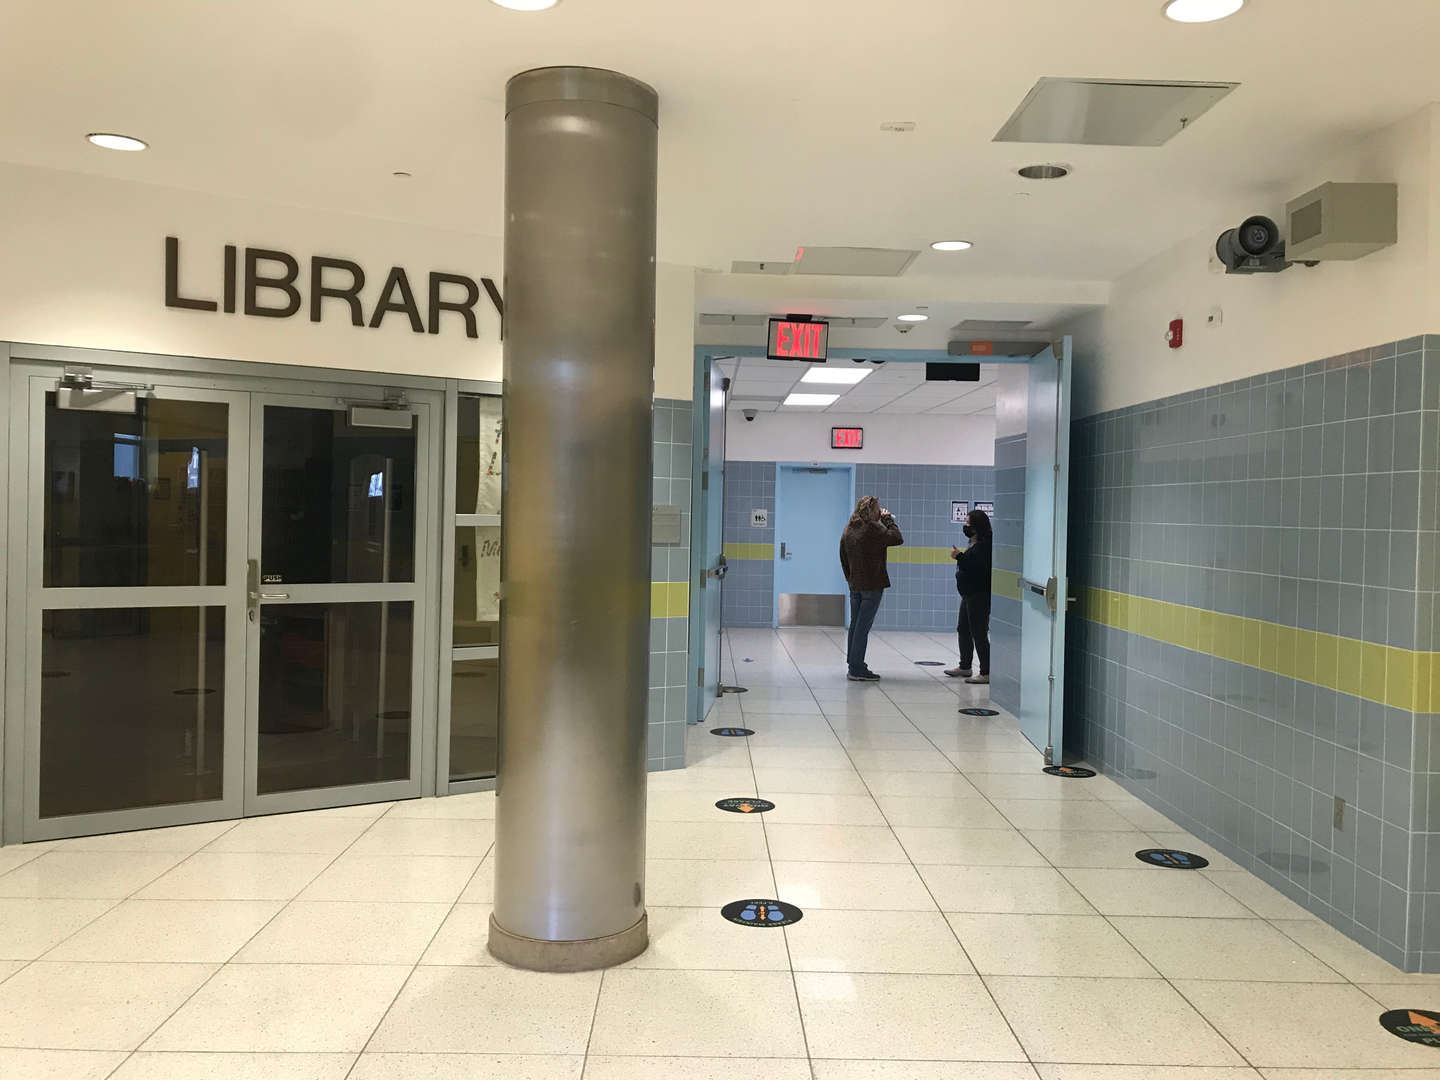 Library floor hallway in the lower lobby.